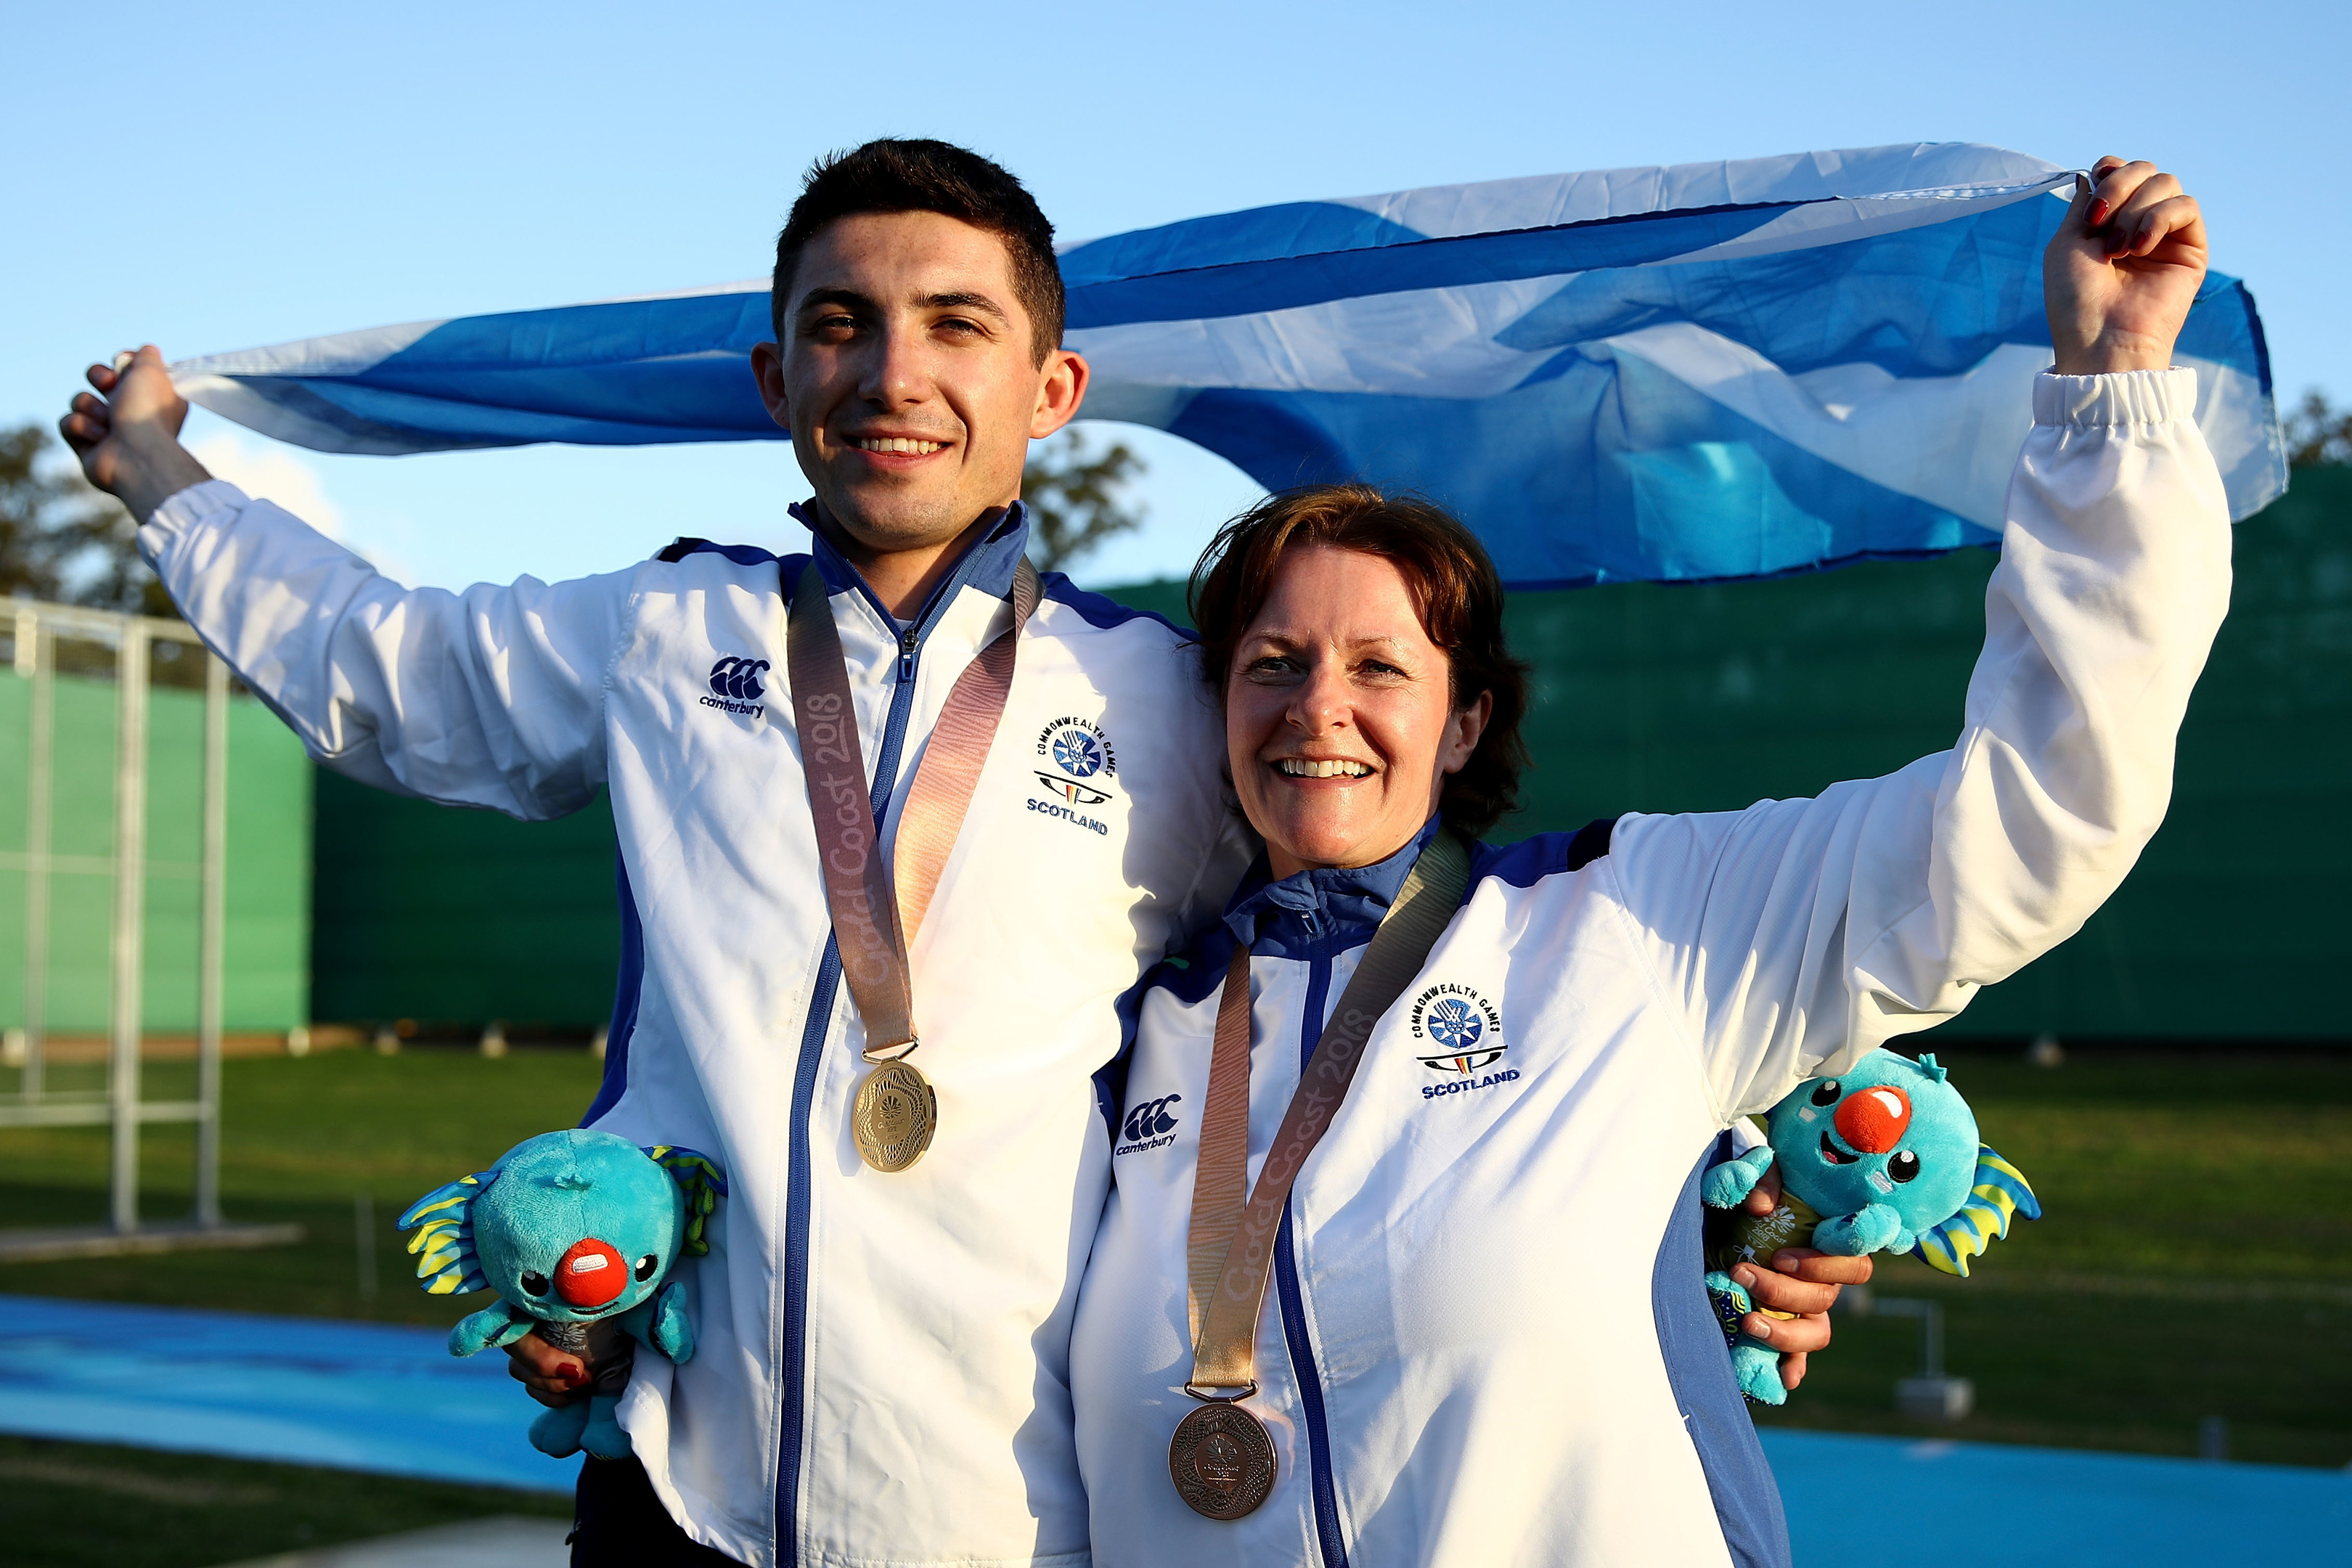 David McMath (L) and Linda Pearson of Scotland pose during the medal ceremony (Photo by Phil Walter/Getty Images)